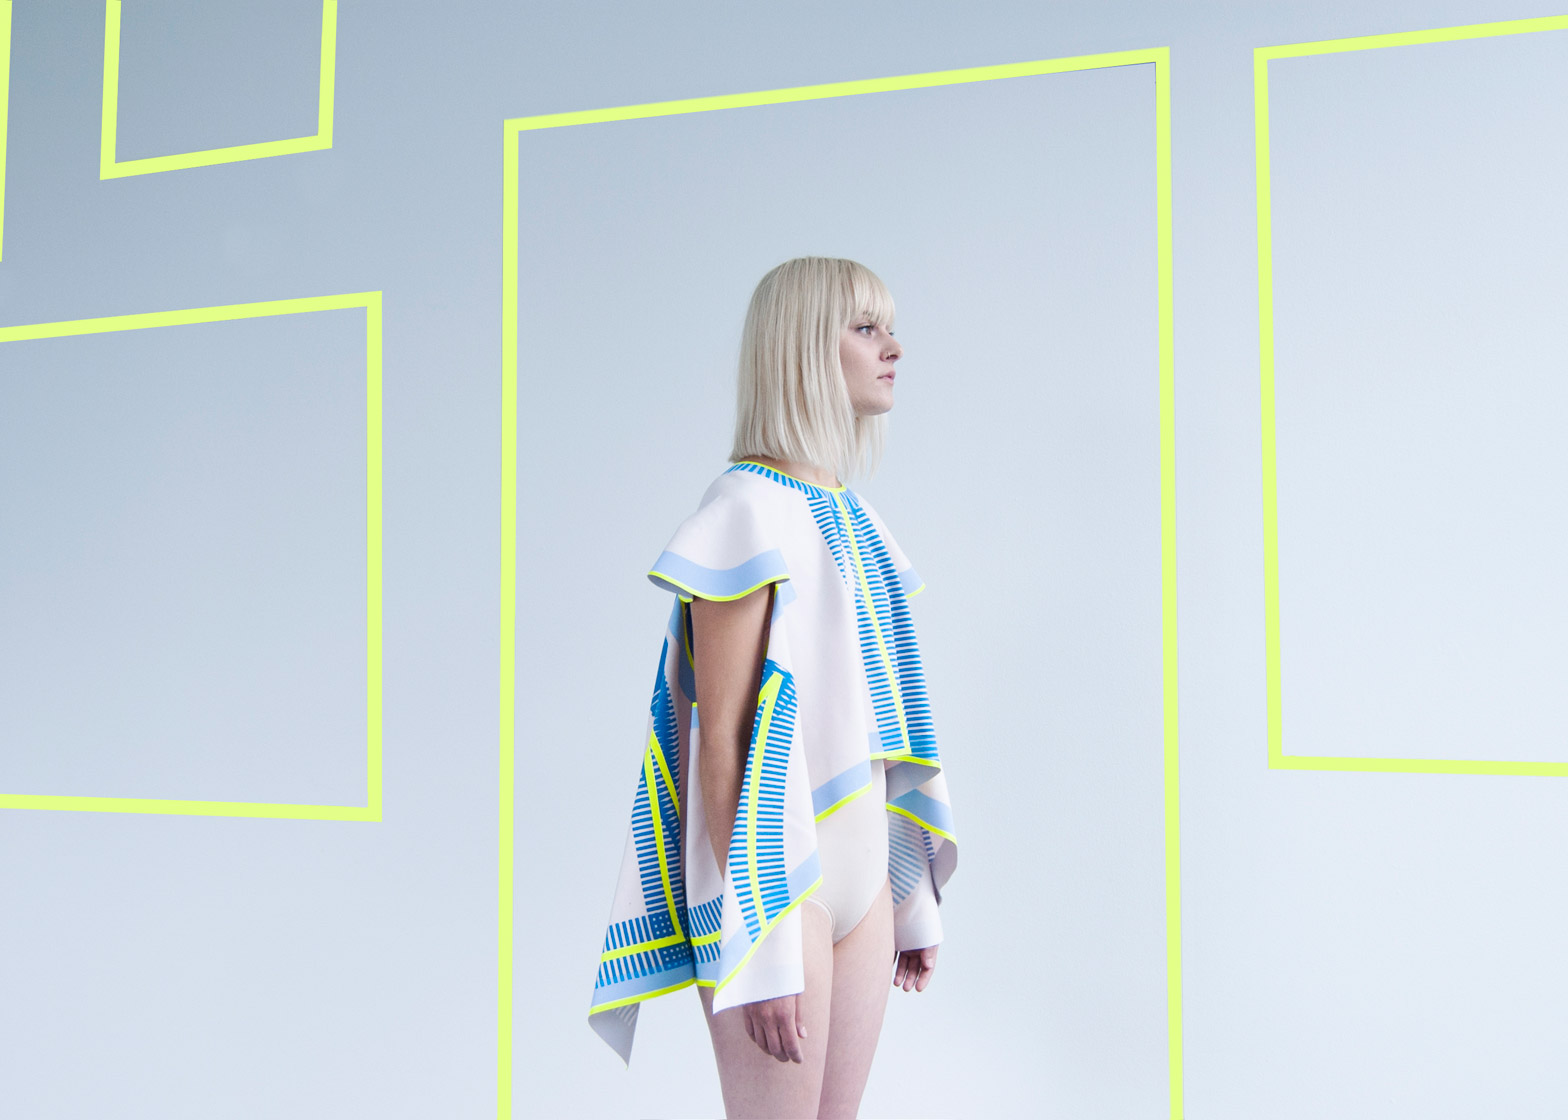 Vera-de-Pont_Pop-Up_fashion-collection_graduation_fashion-designer_Dutch-Design-Week-2015_dezeen_1568_1